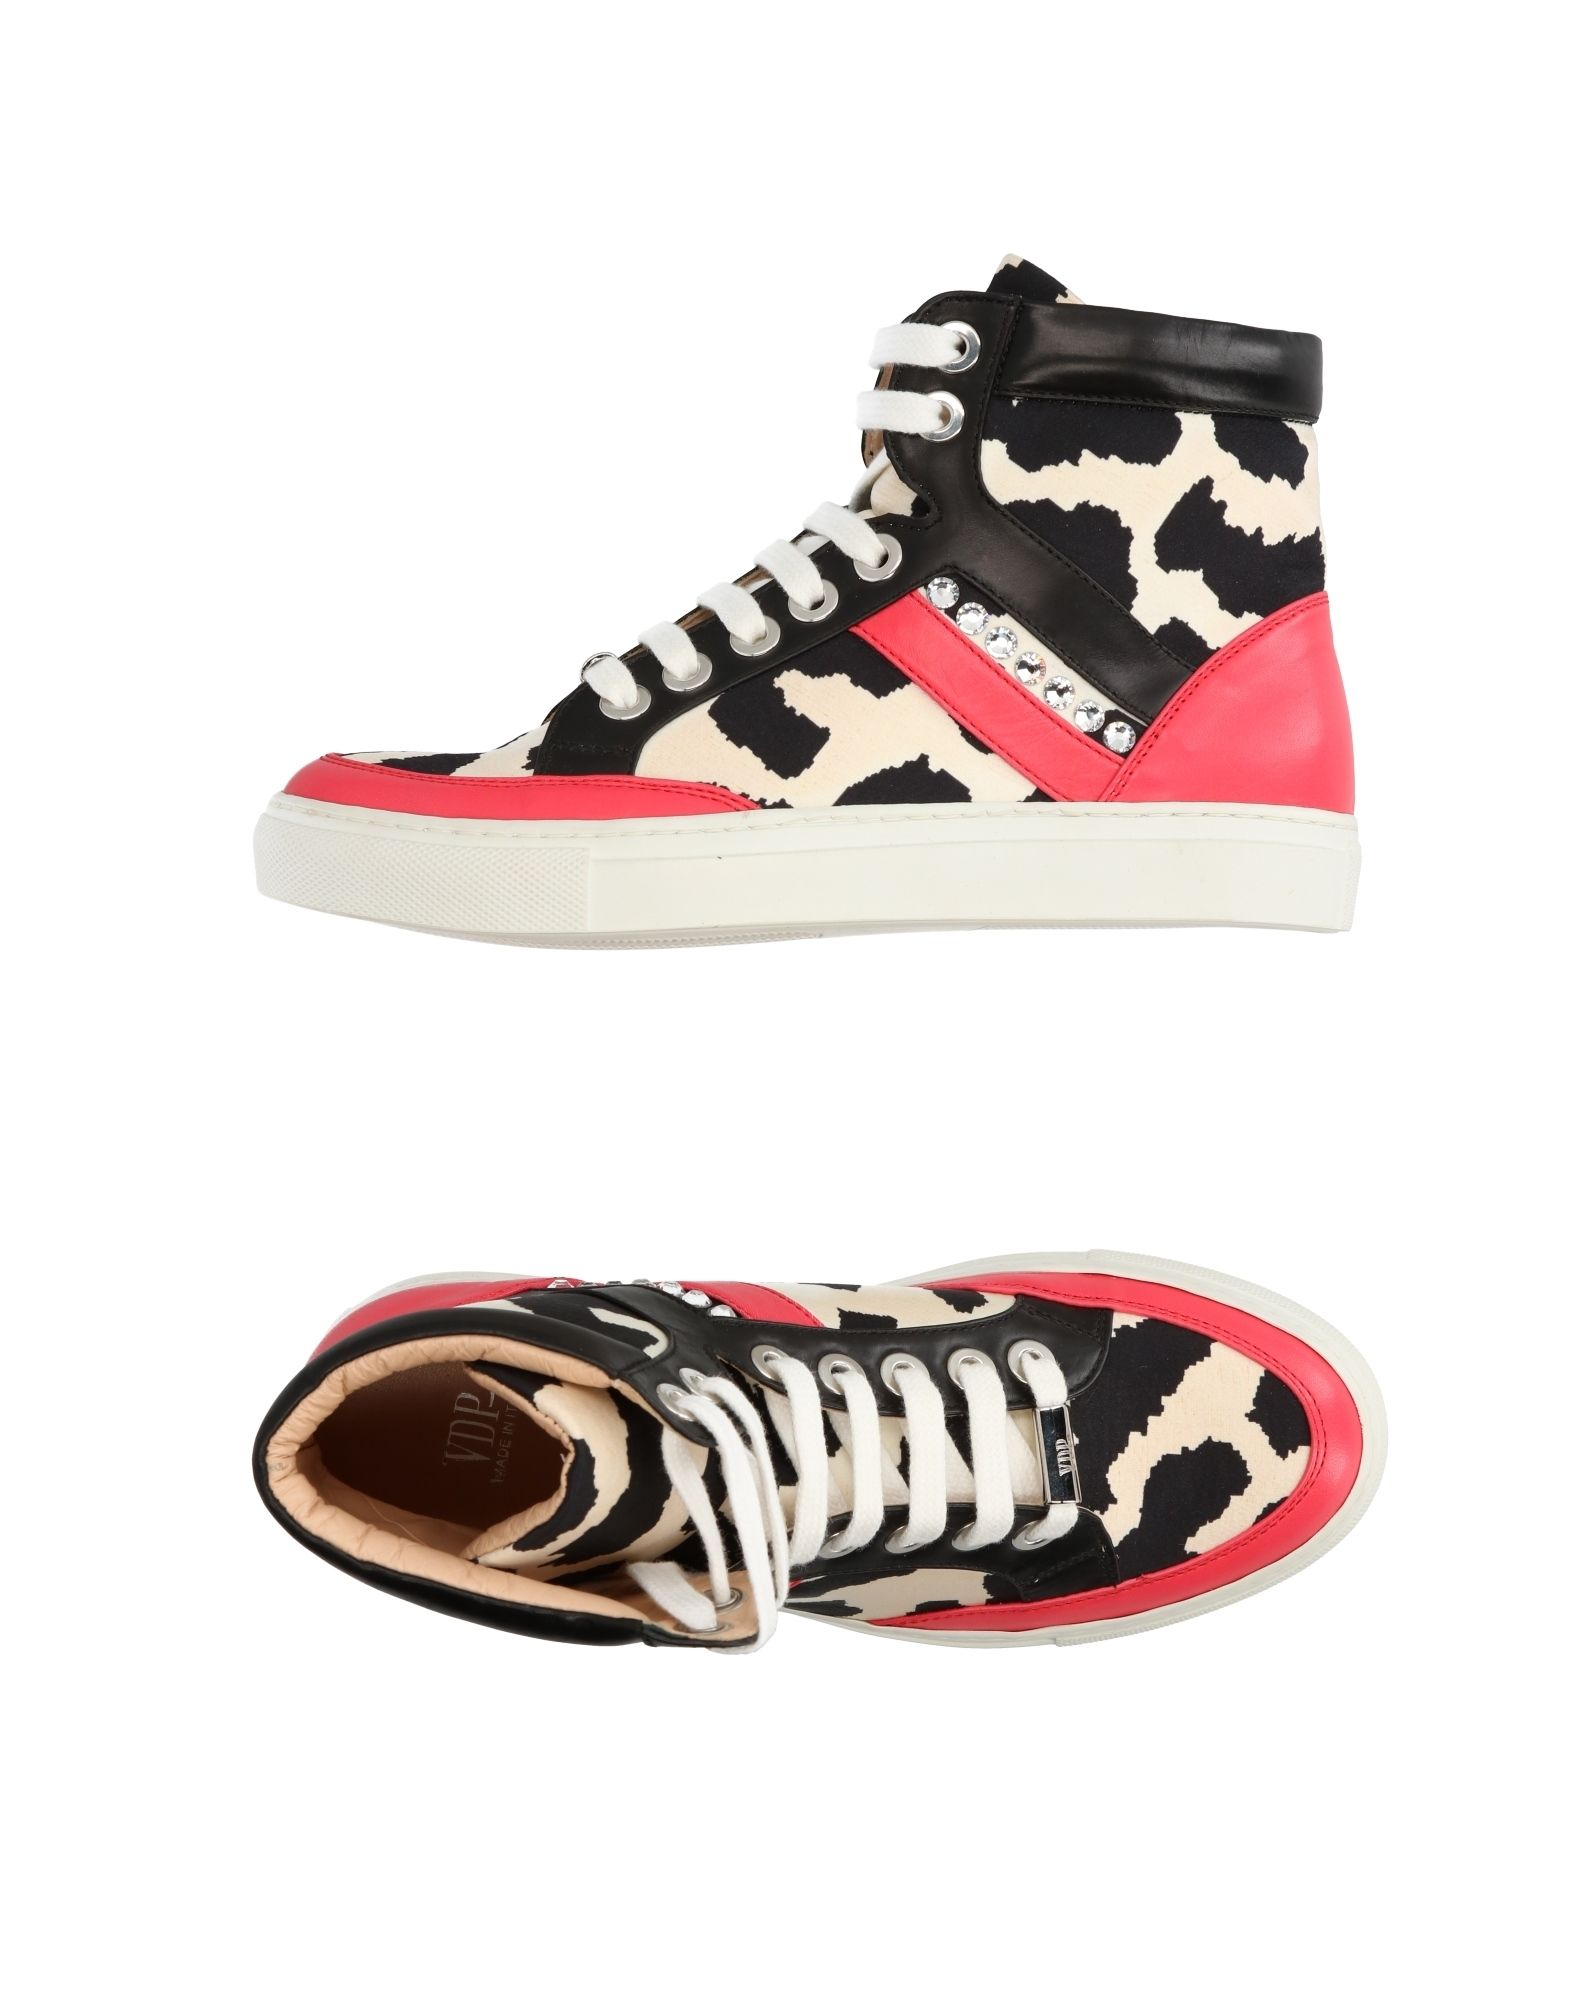 Sneakers Vdp Collection Donna - Acquista online su